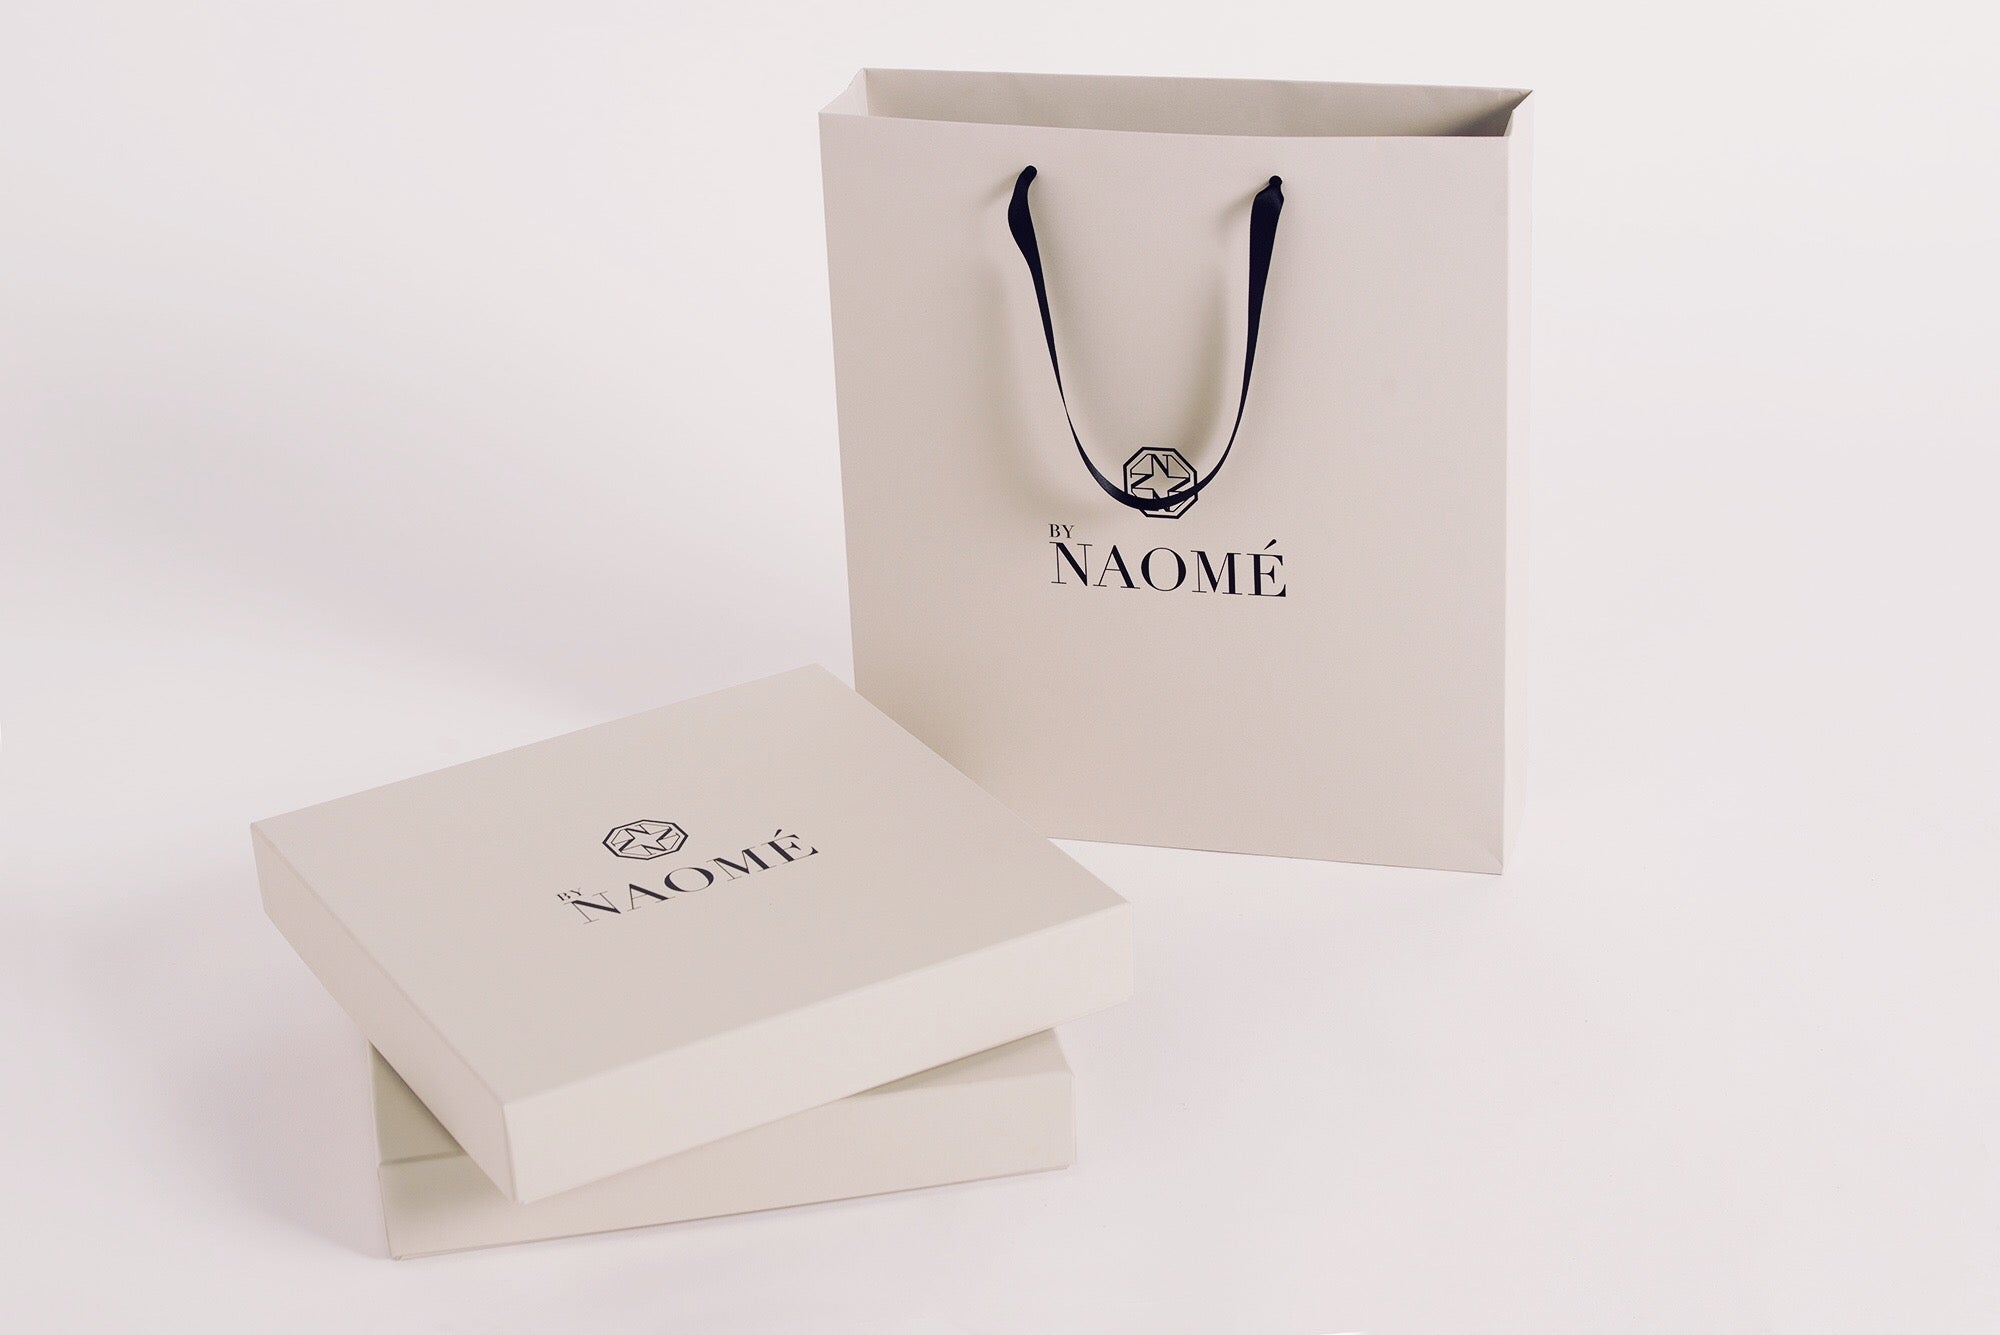 luxury-organic-bio-sustainable-t-shirt-ethical-swiss-made-by-naome-bags